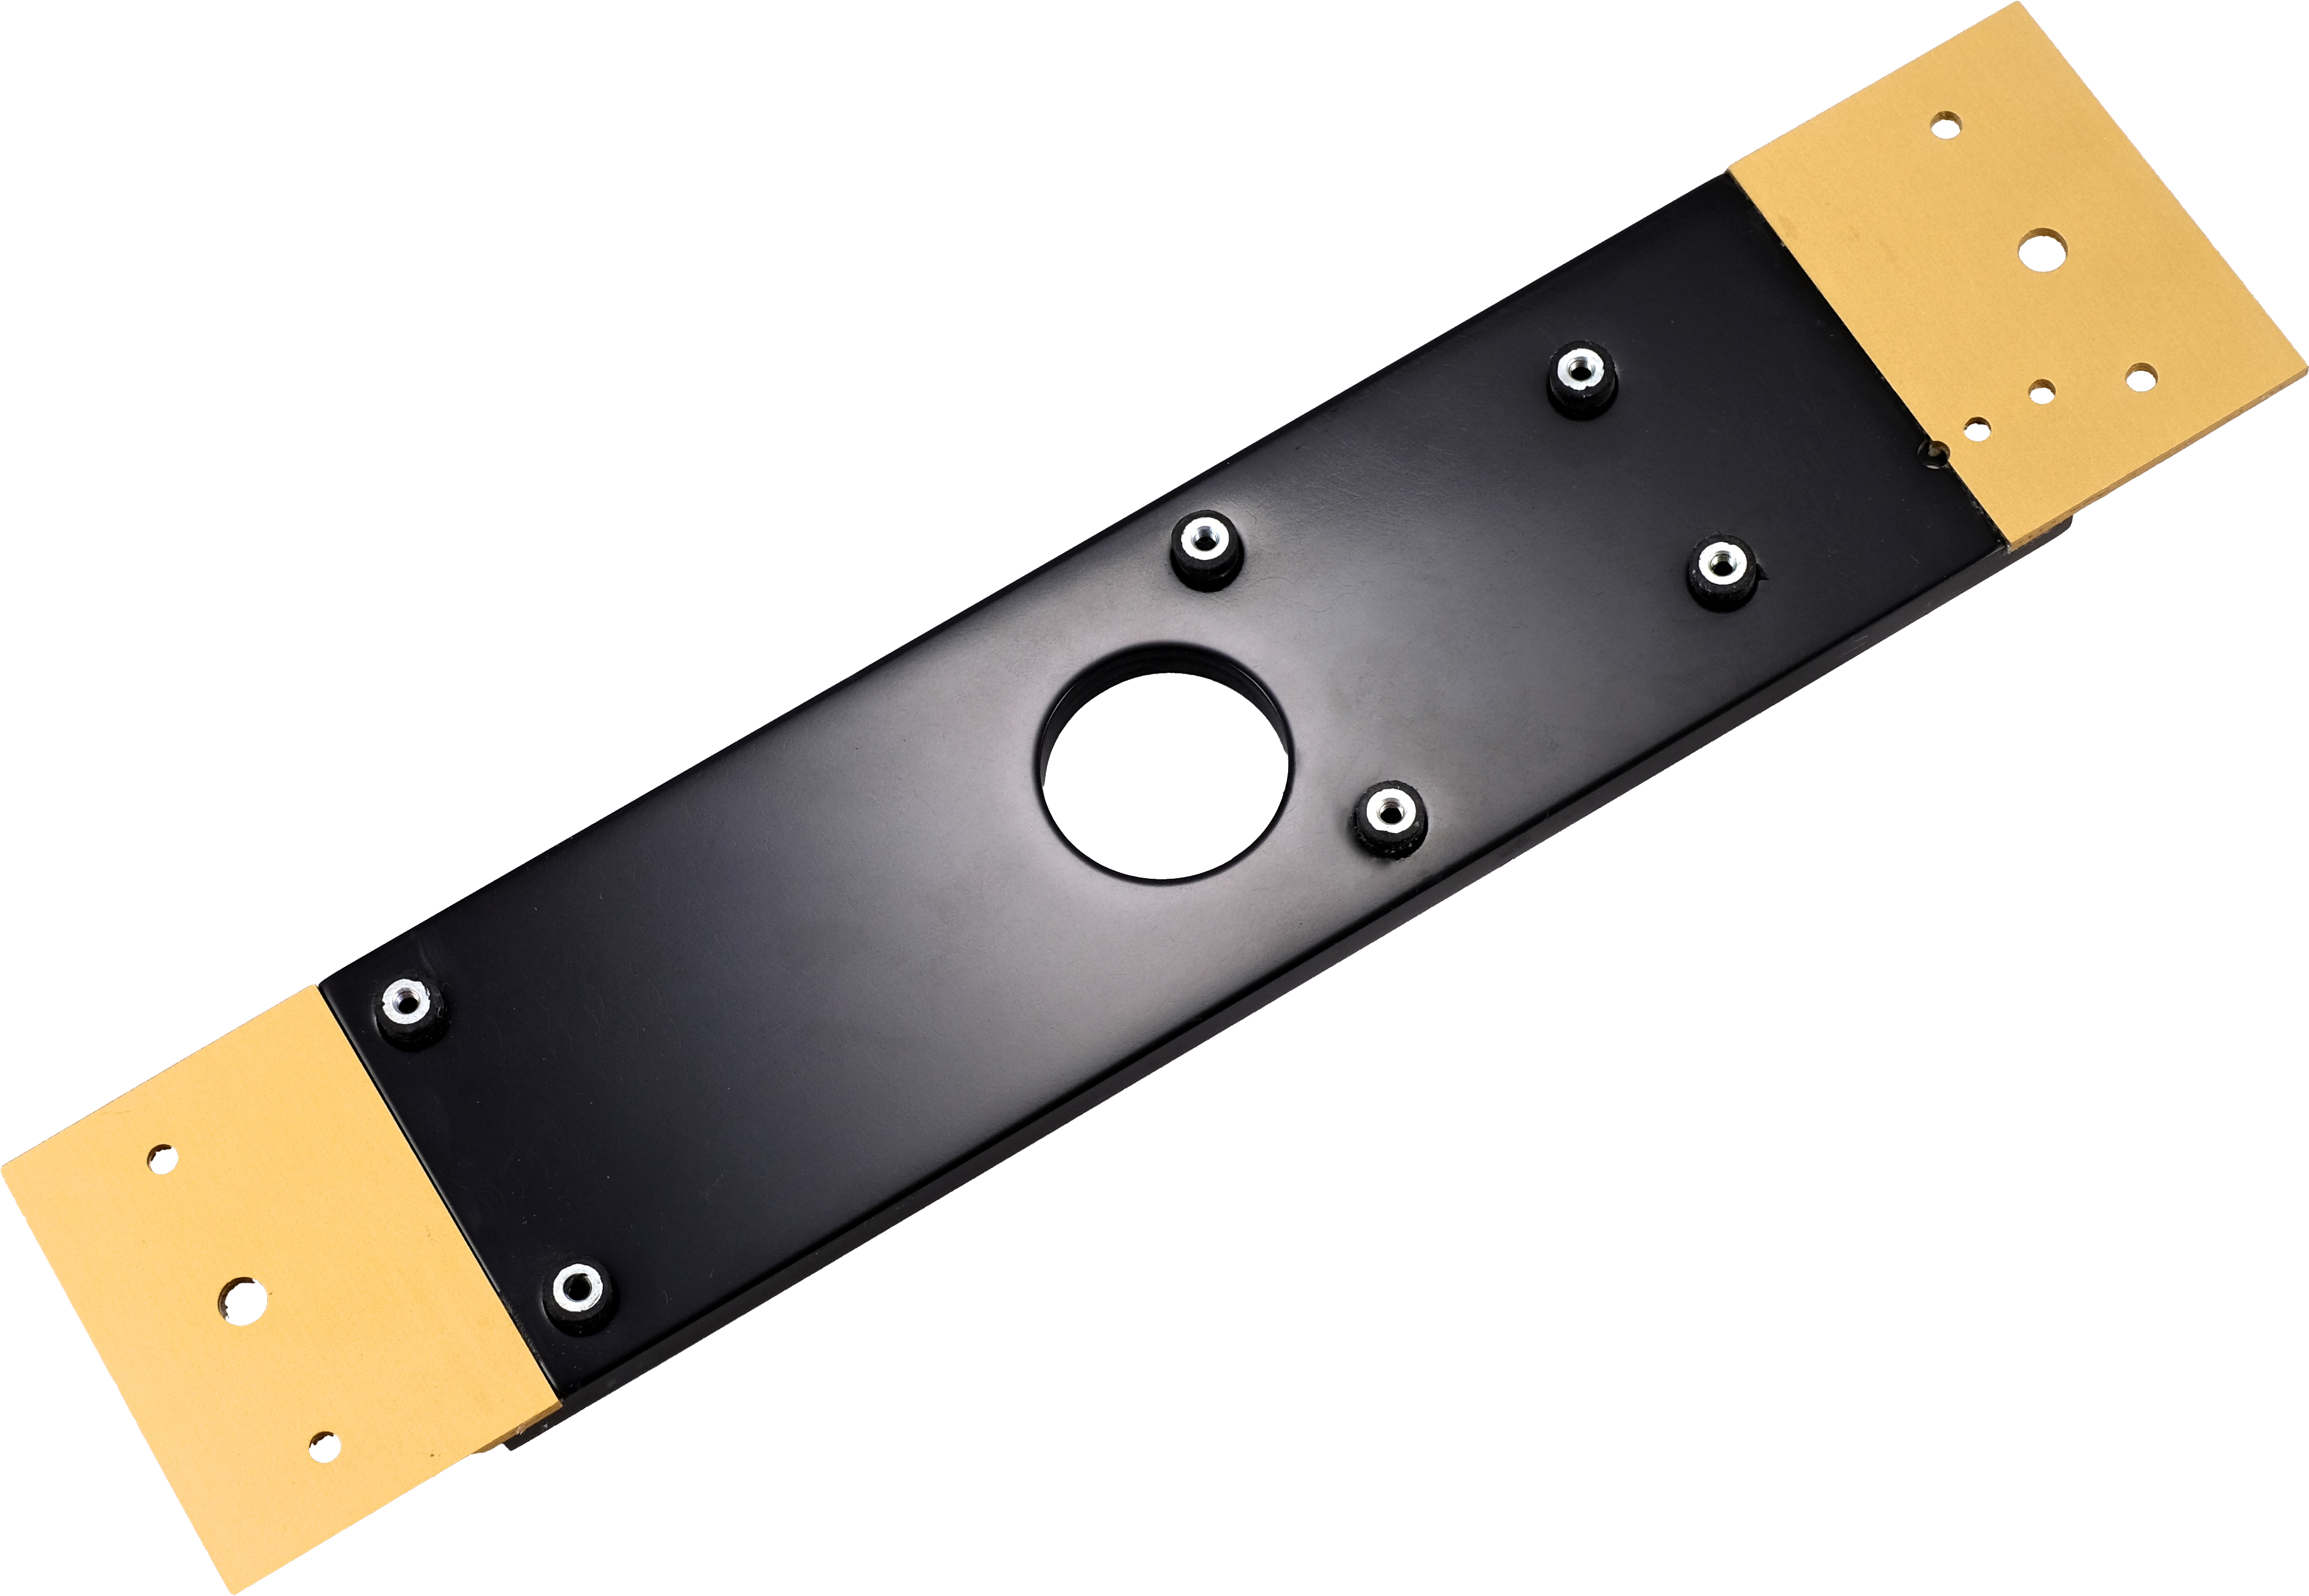 StackAudio LP12 Serene Cross Brace made from Solid Surface, Advanced Vibration Dissipation Composite and aluminium isolation supports